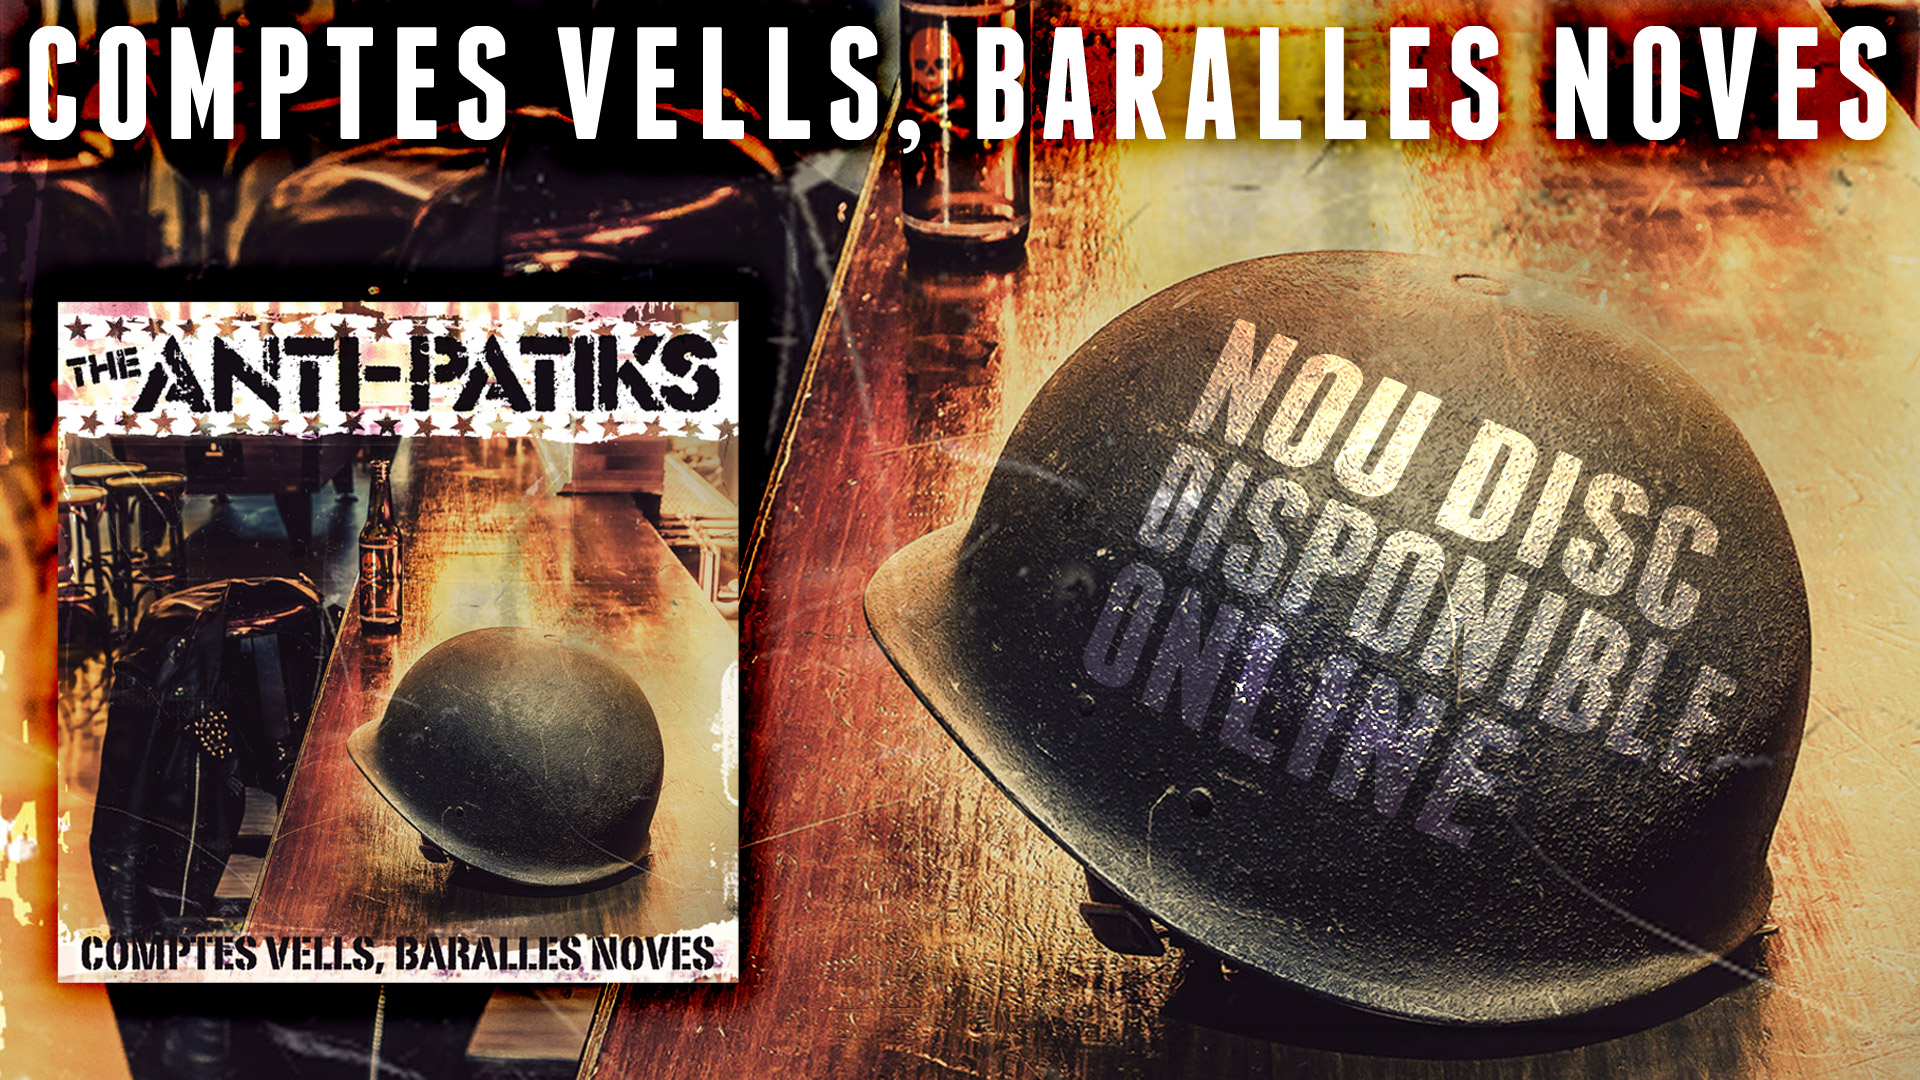 the-anti-patiks-comptes-vells-baralles-novesinline